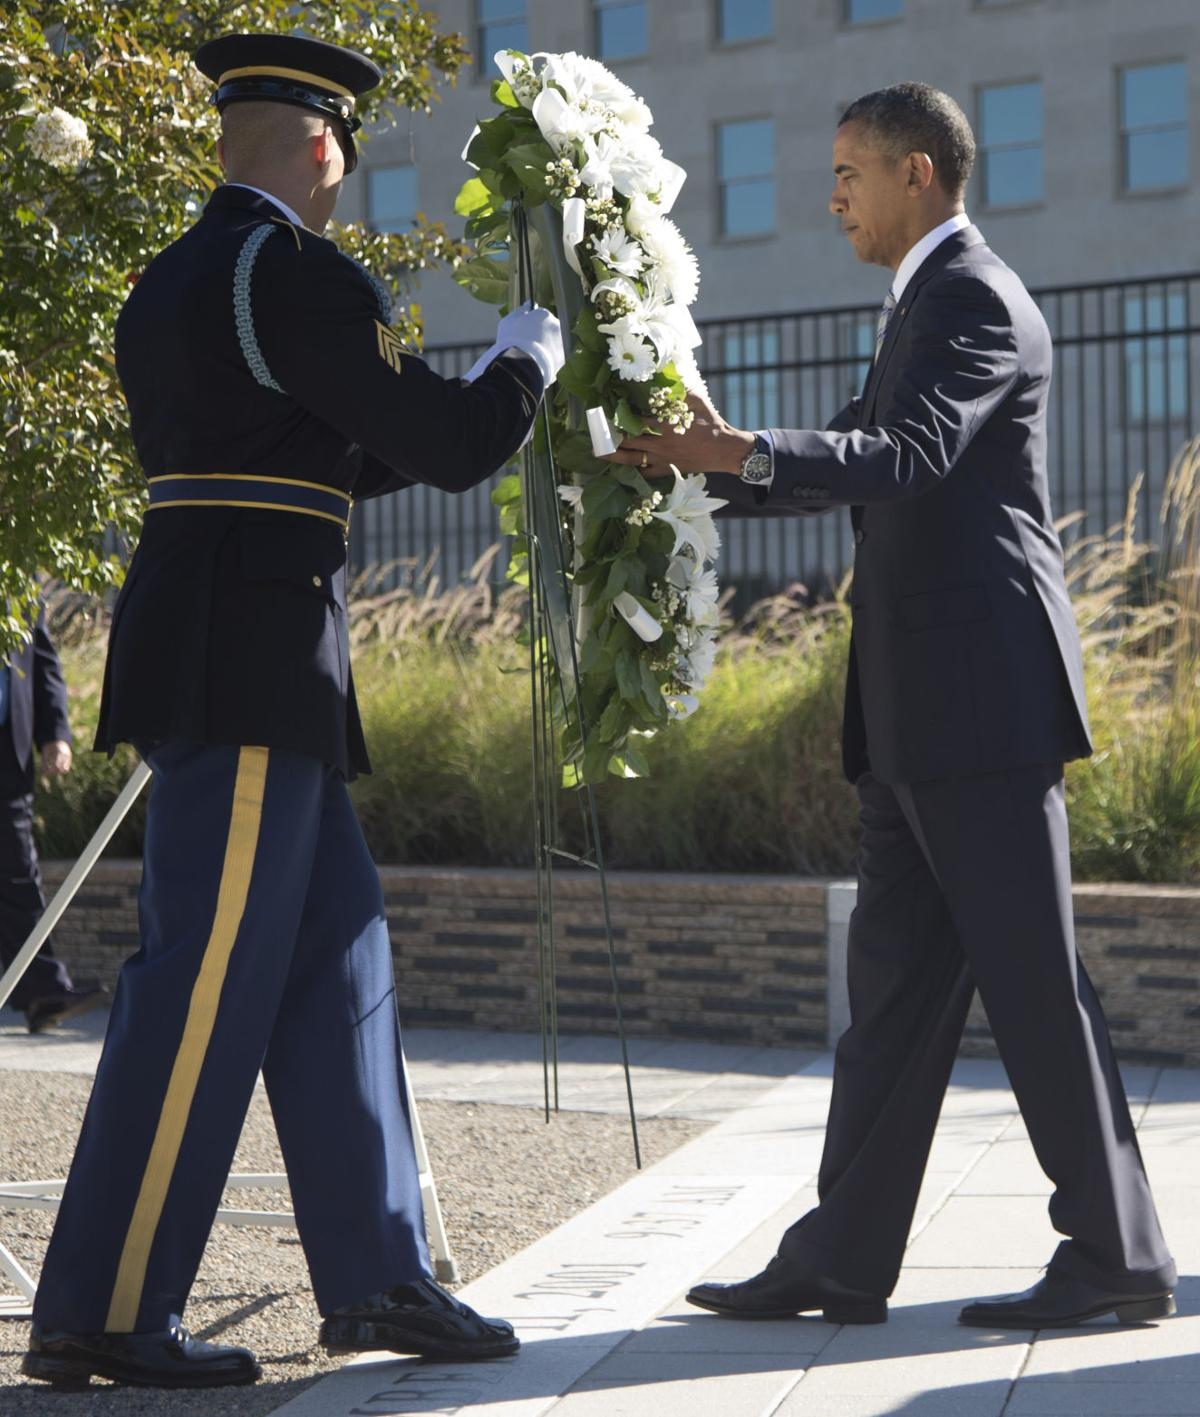 'We'll always remember'Smaller ceremonies on 11th anniversaryPartisan jibes absent for 9/11, but not politics